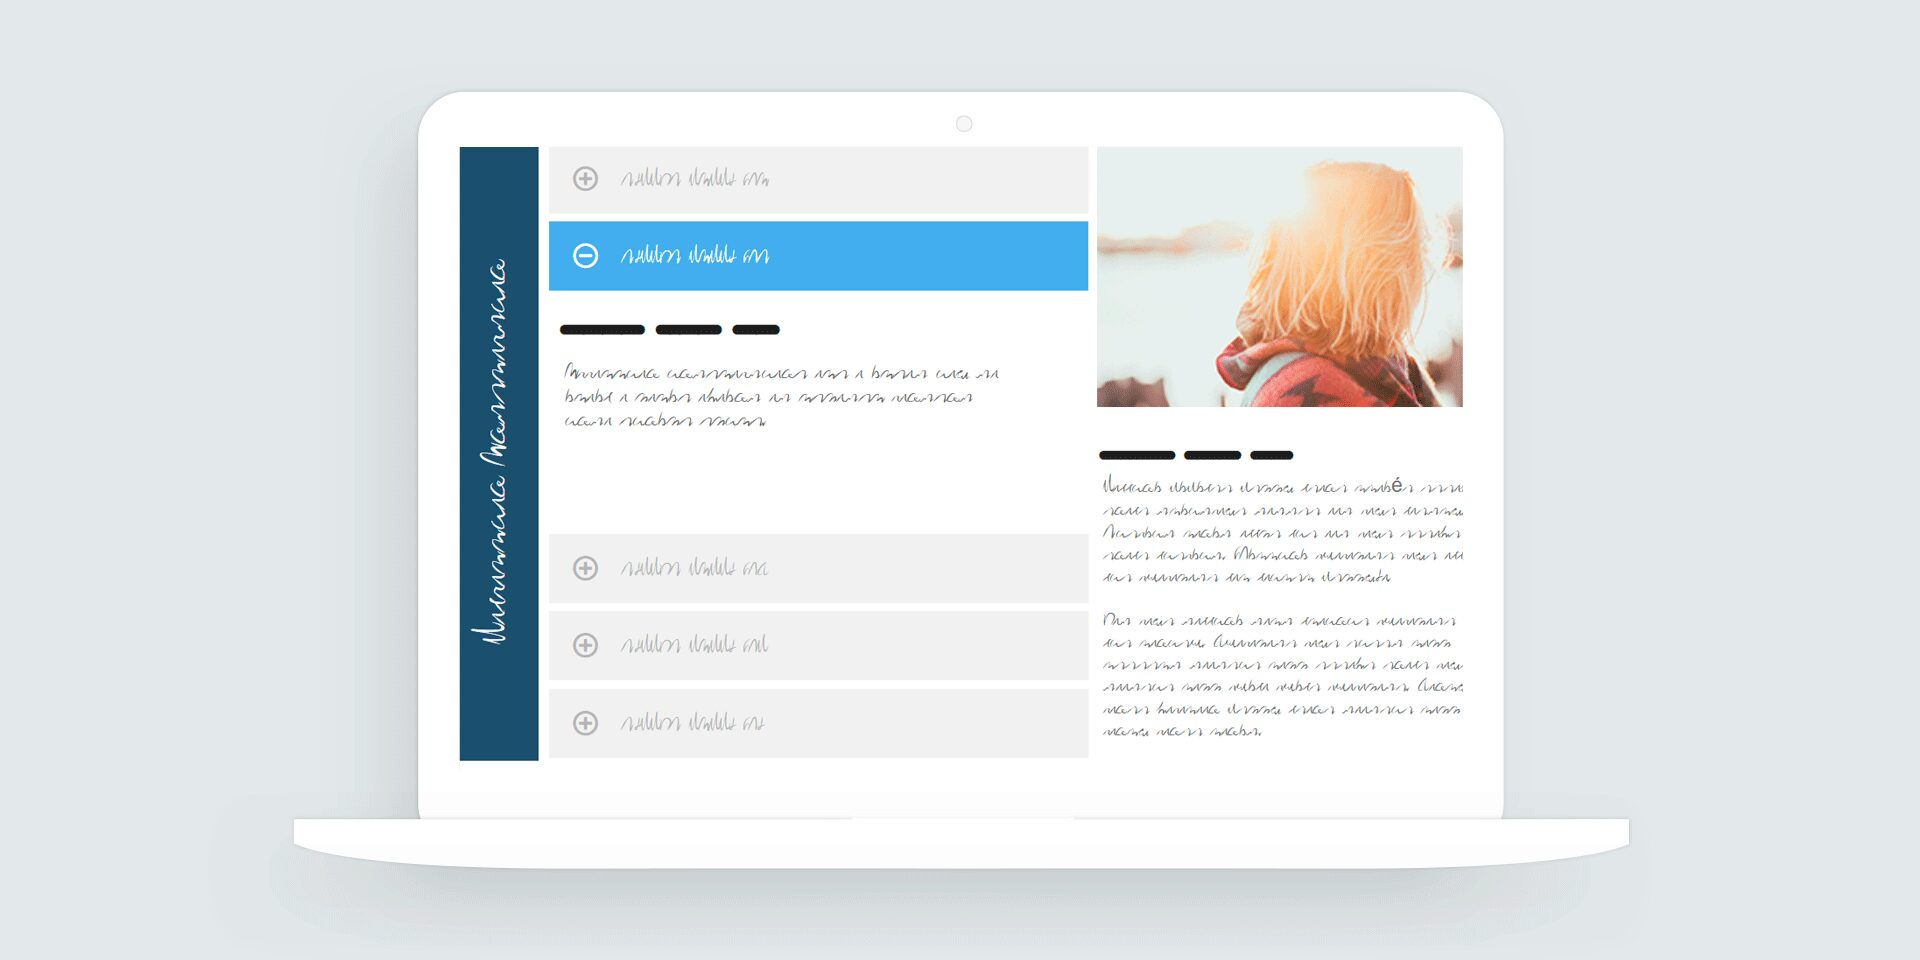 Storyline 360: Tabcordion with Scrolling Panel